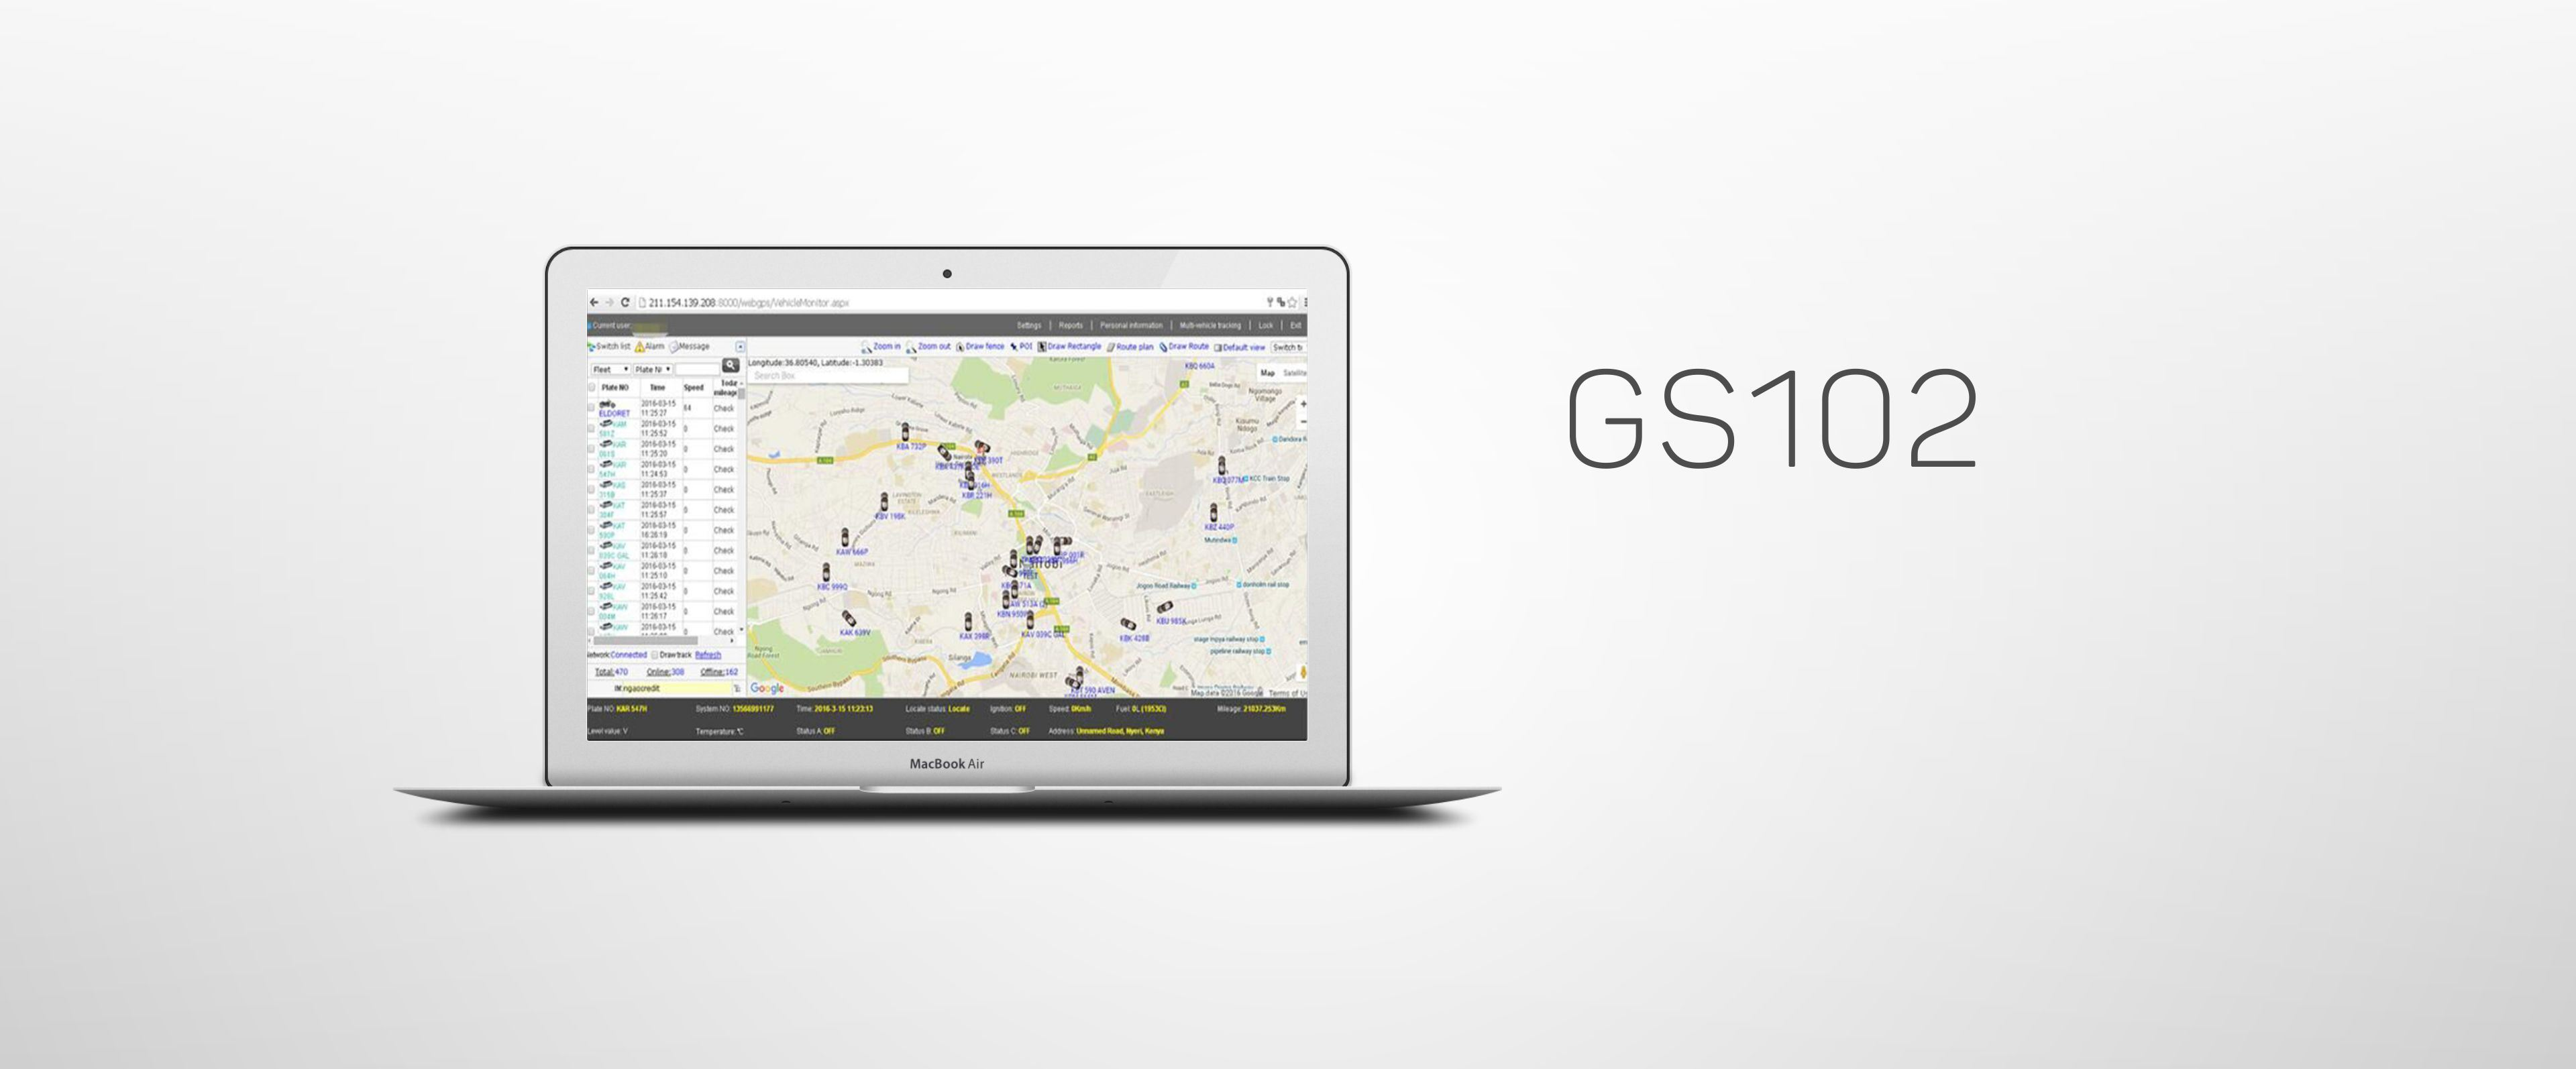 Cloud Server Stable and Fast GPS Tracking System